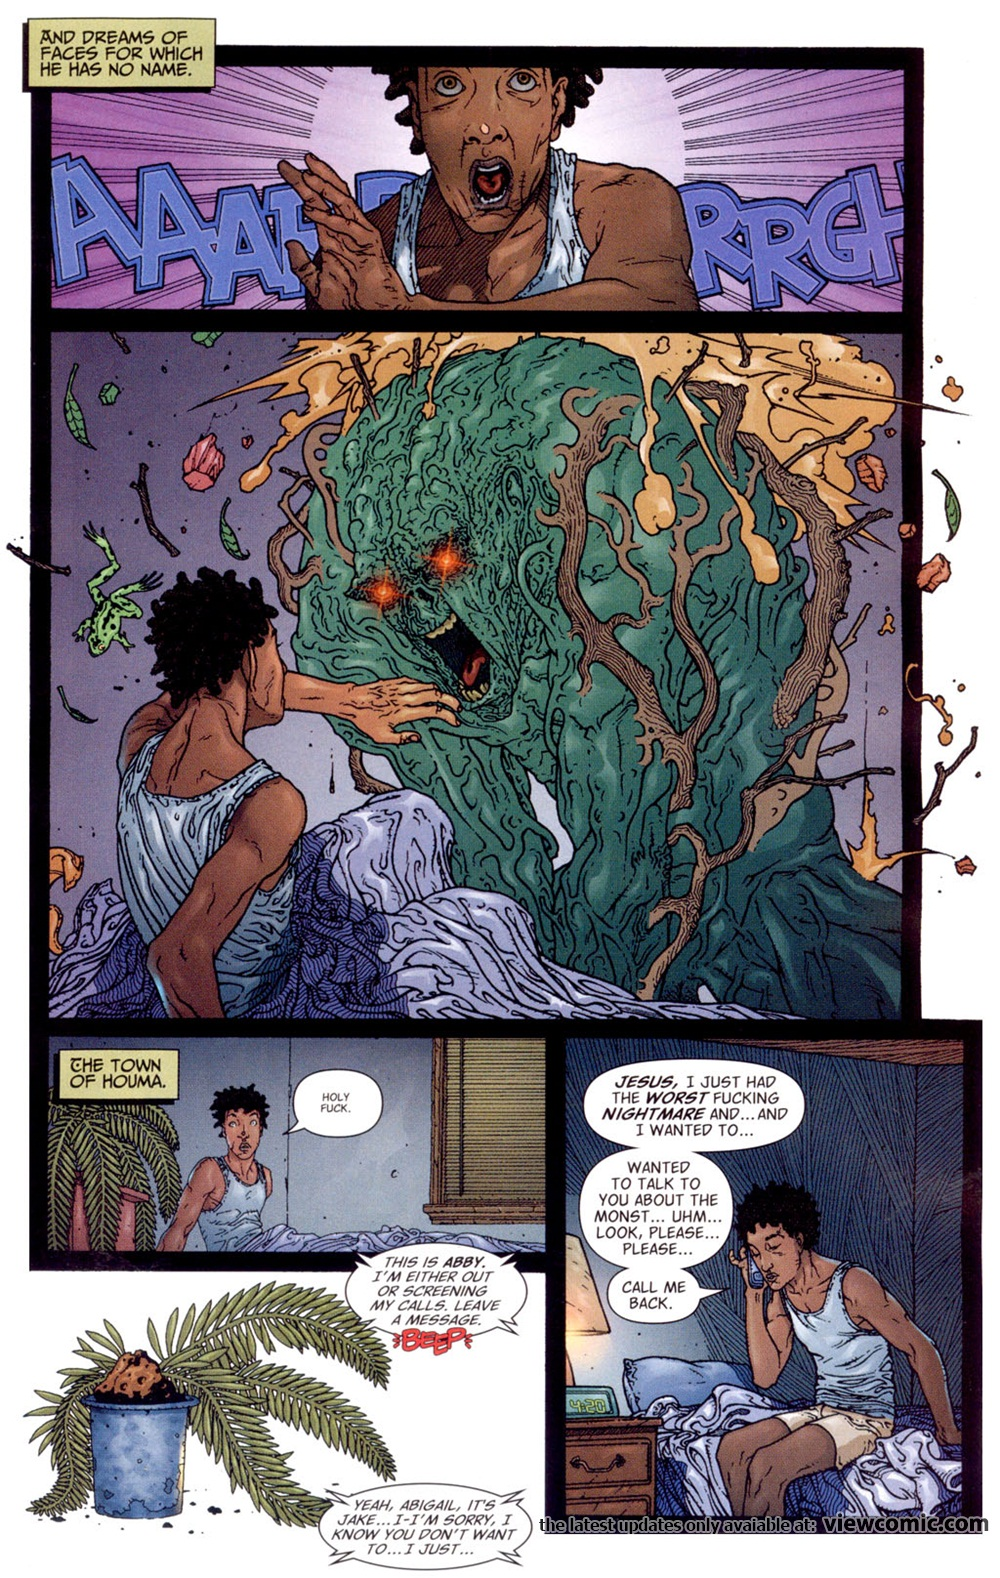 Swamp Thing v4 013 | Vietcomic.net reading comics online for free